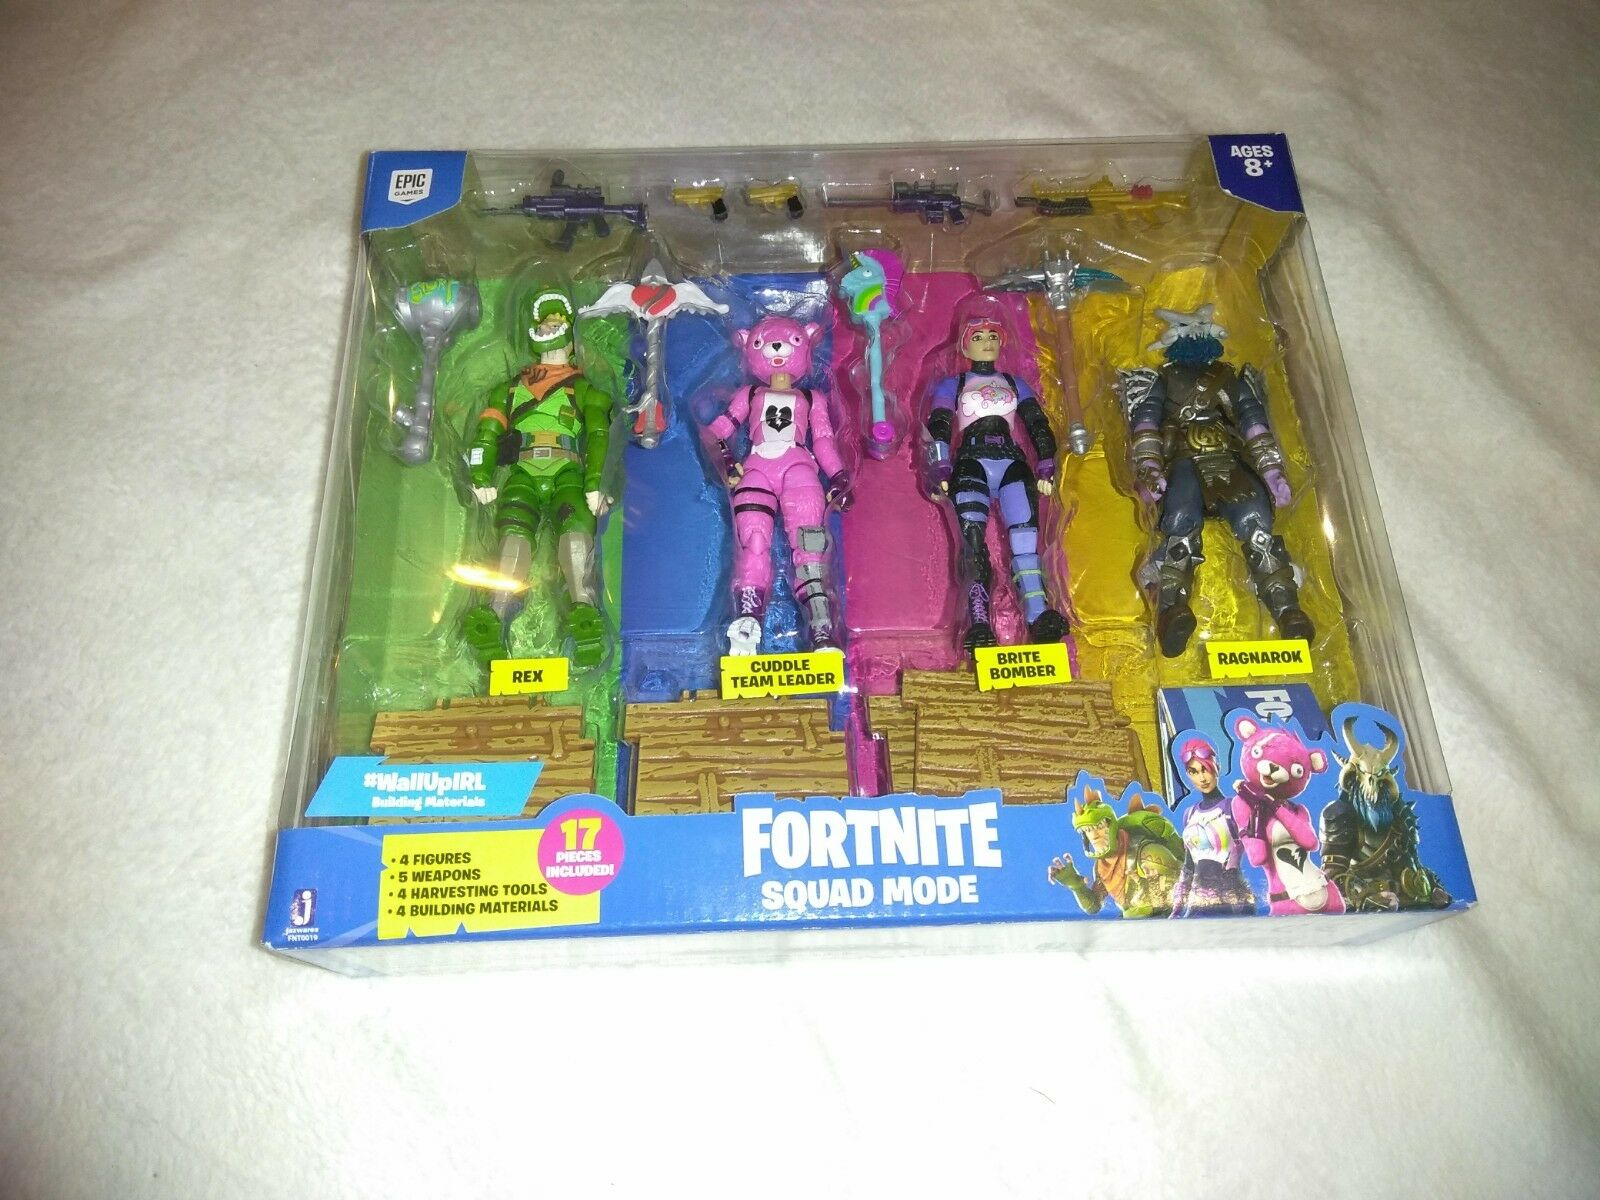 Fortnite Squad Mode 4 Action Figure Pk A Boxed Set Fortnight 17pc by Epic Games